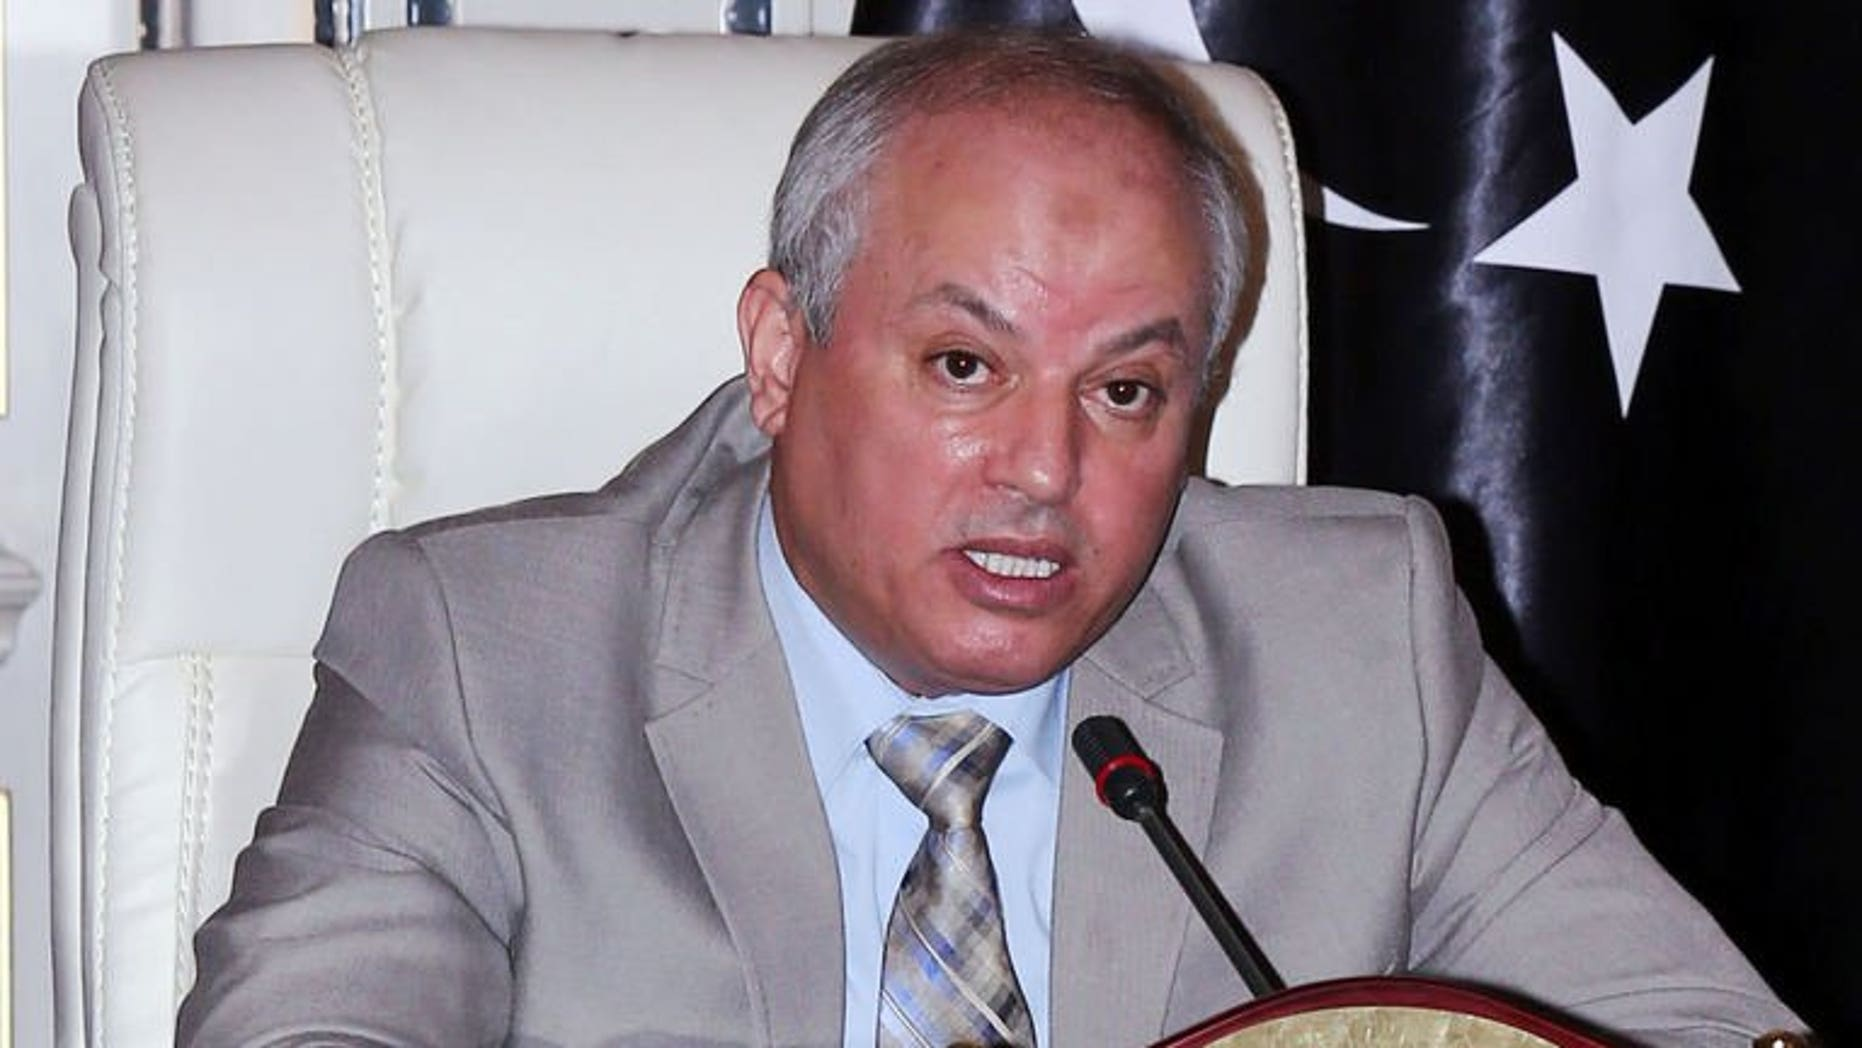 Libya's Minister of Oil and Gas Abdelbari al-Aroussi speaks during a press conference on August 5, 2013 in Tripoli. Aroussi said Libya's oil production have come back to normal after protesters forced the closure of exploration terminals.